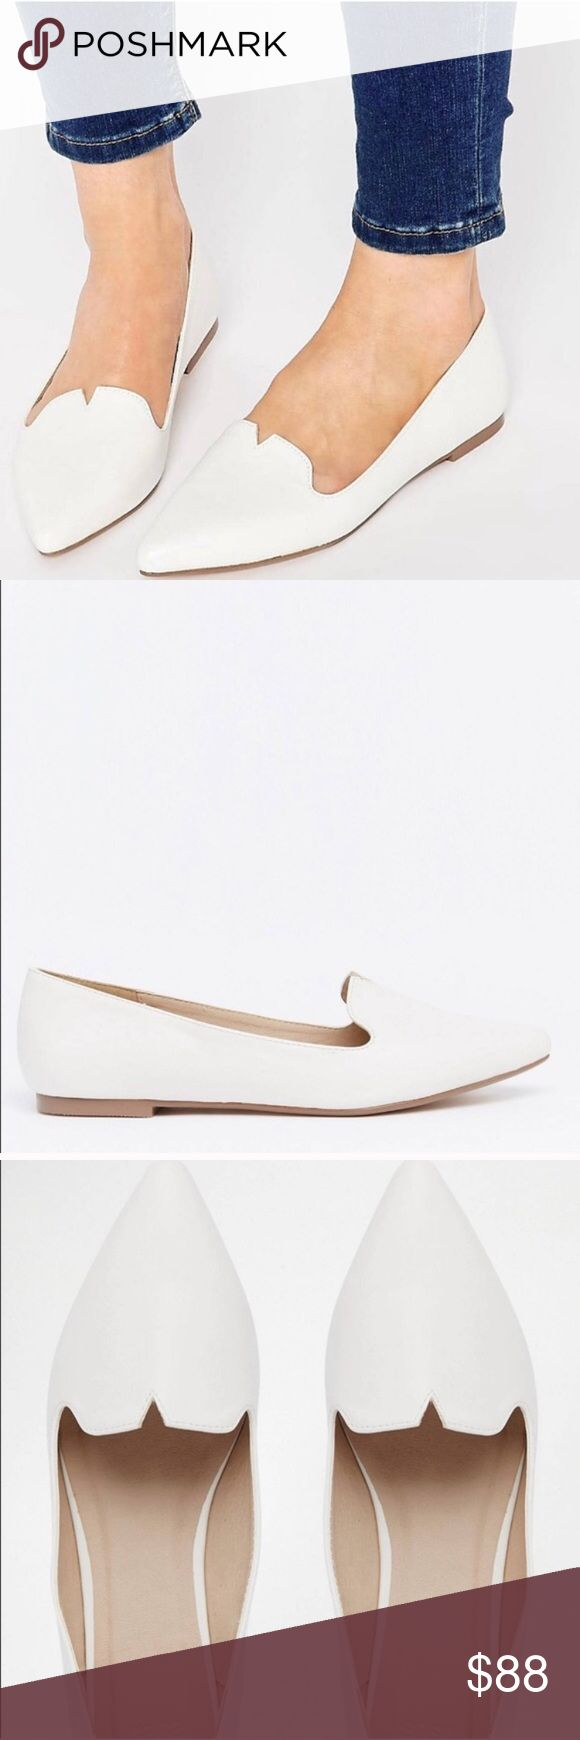 ASOS Louisiana Pointed Ballet Flats Size 9 Cute notch detail. NWT 😍😍 ASOS Shoes Flats & Loafers